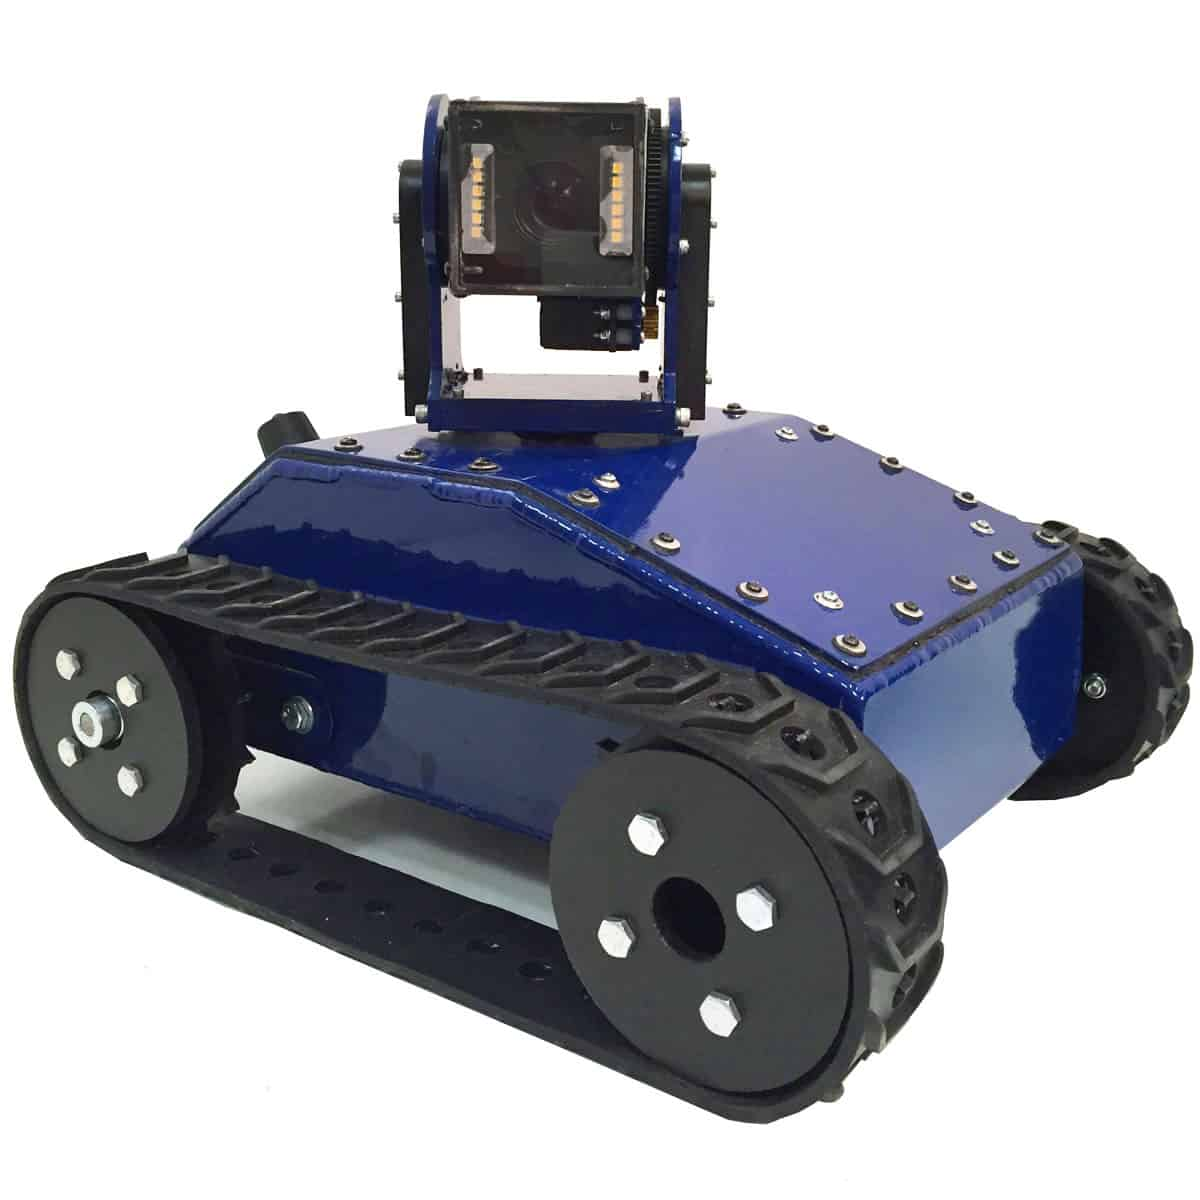 MLT-42-W Watertight Compact Inspection Robot with PTZ Camera